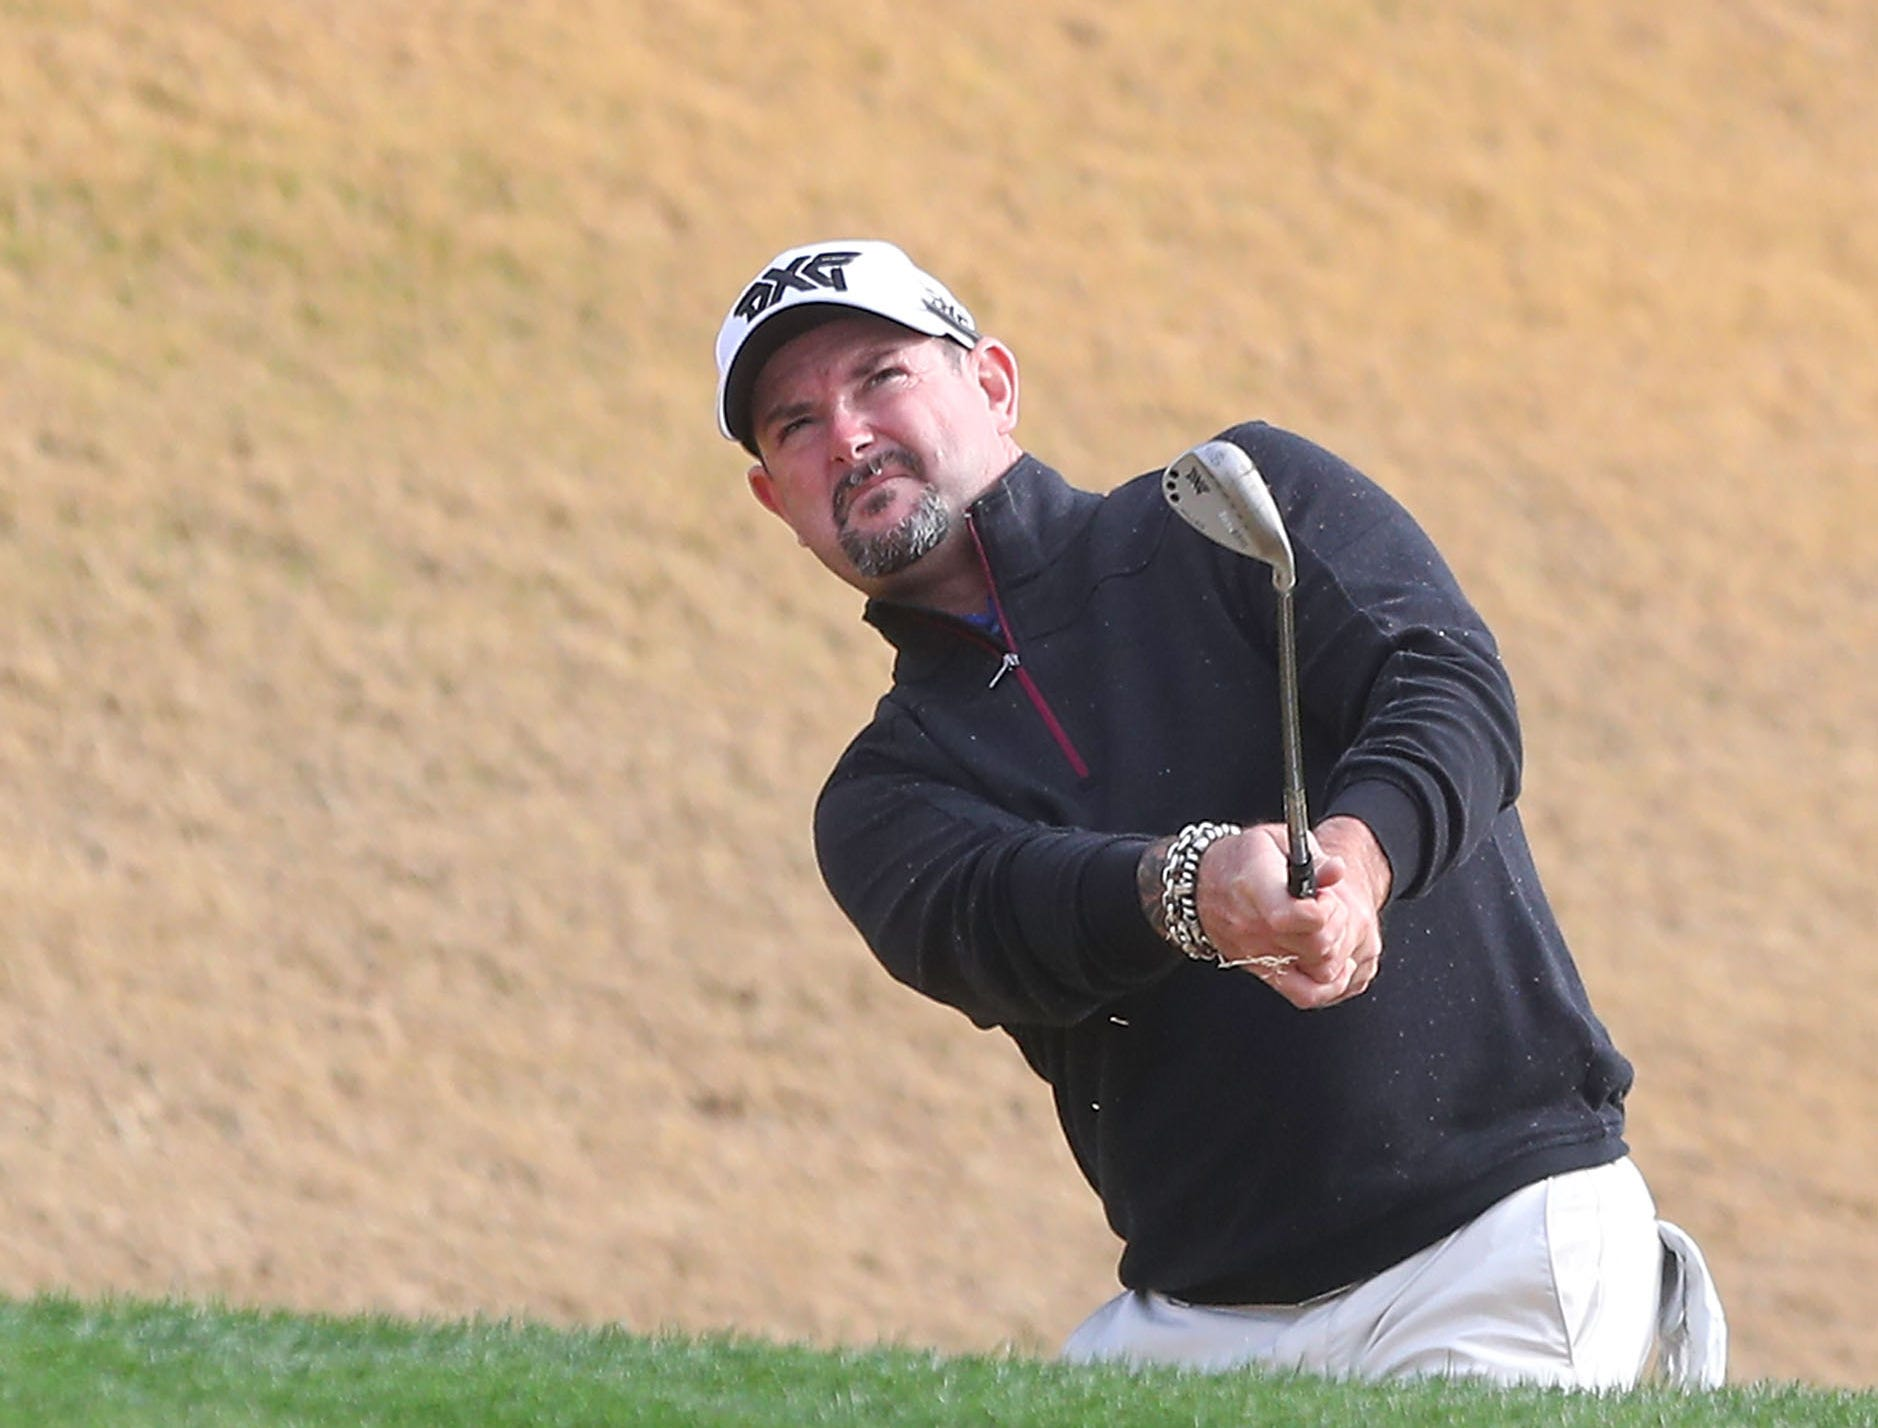 Rory Sabbatini hits a shot from just off the sixth green at the Nicklaus Tournament Course at PGA West, January 17, 2019.